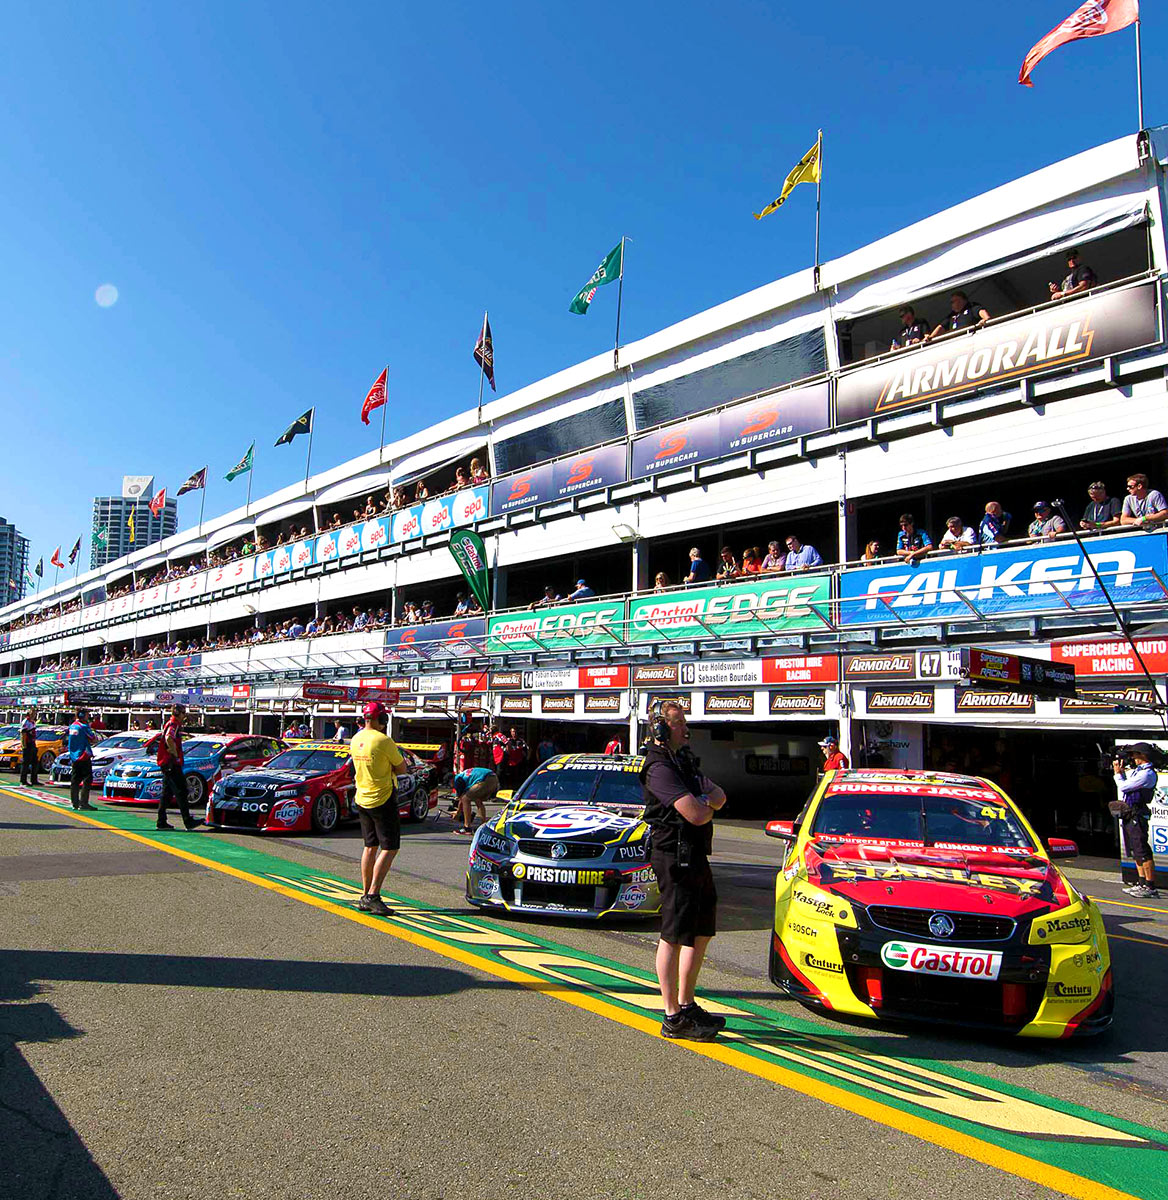 V8 Super cars lined up in the pitlane